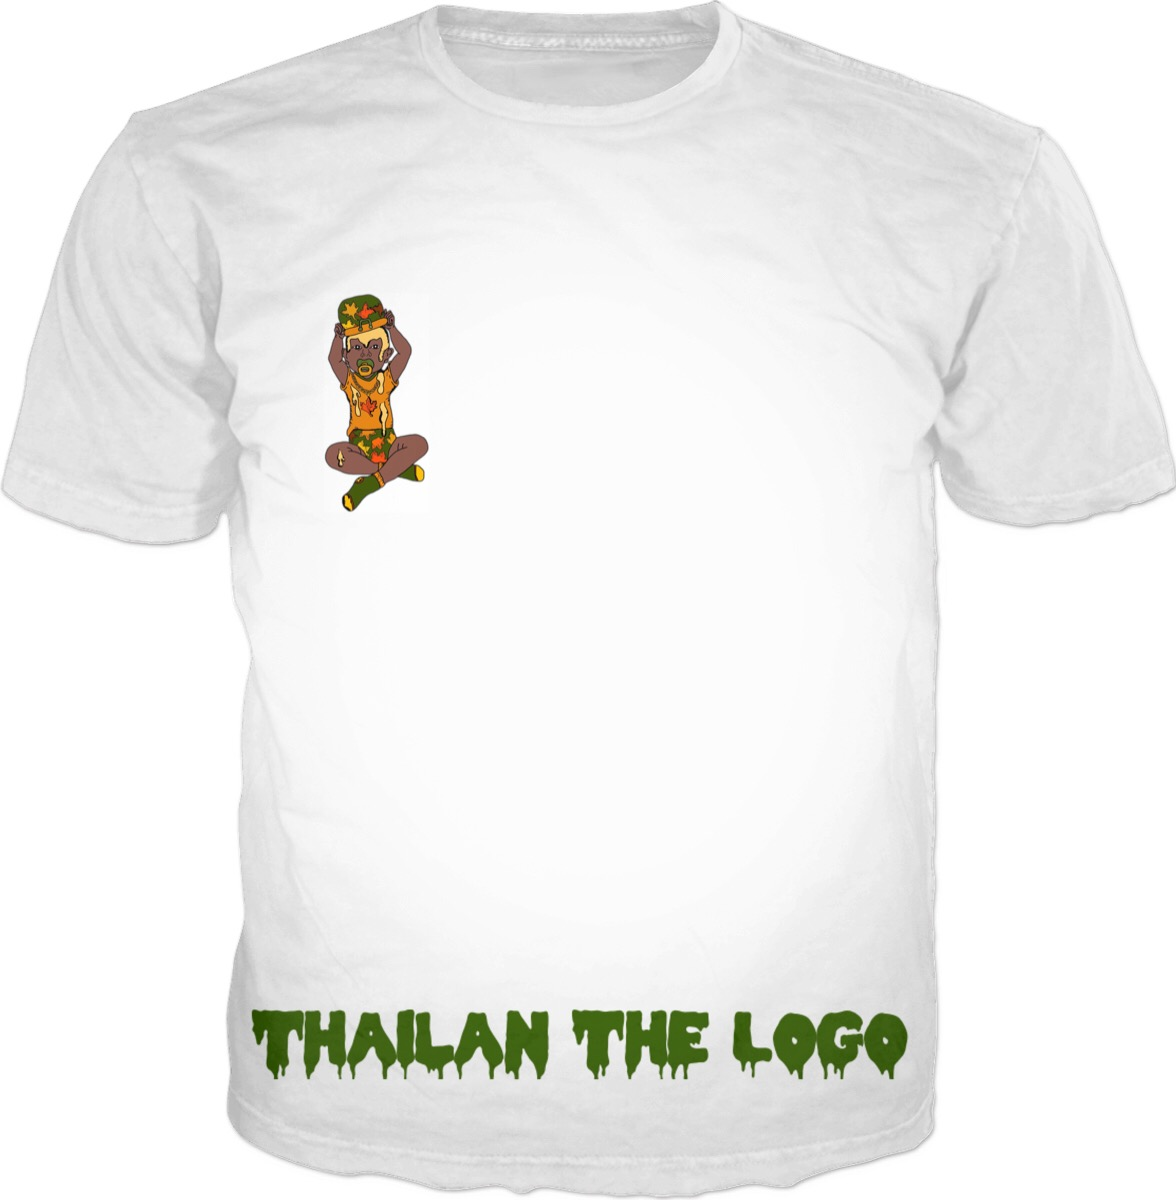 Thailan the Logo Shirt